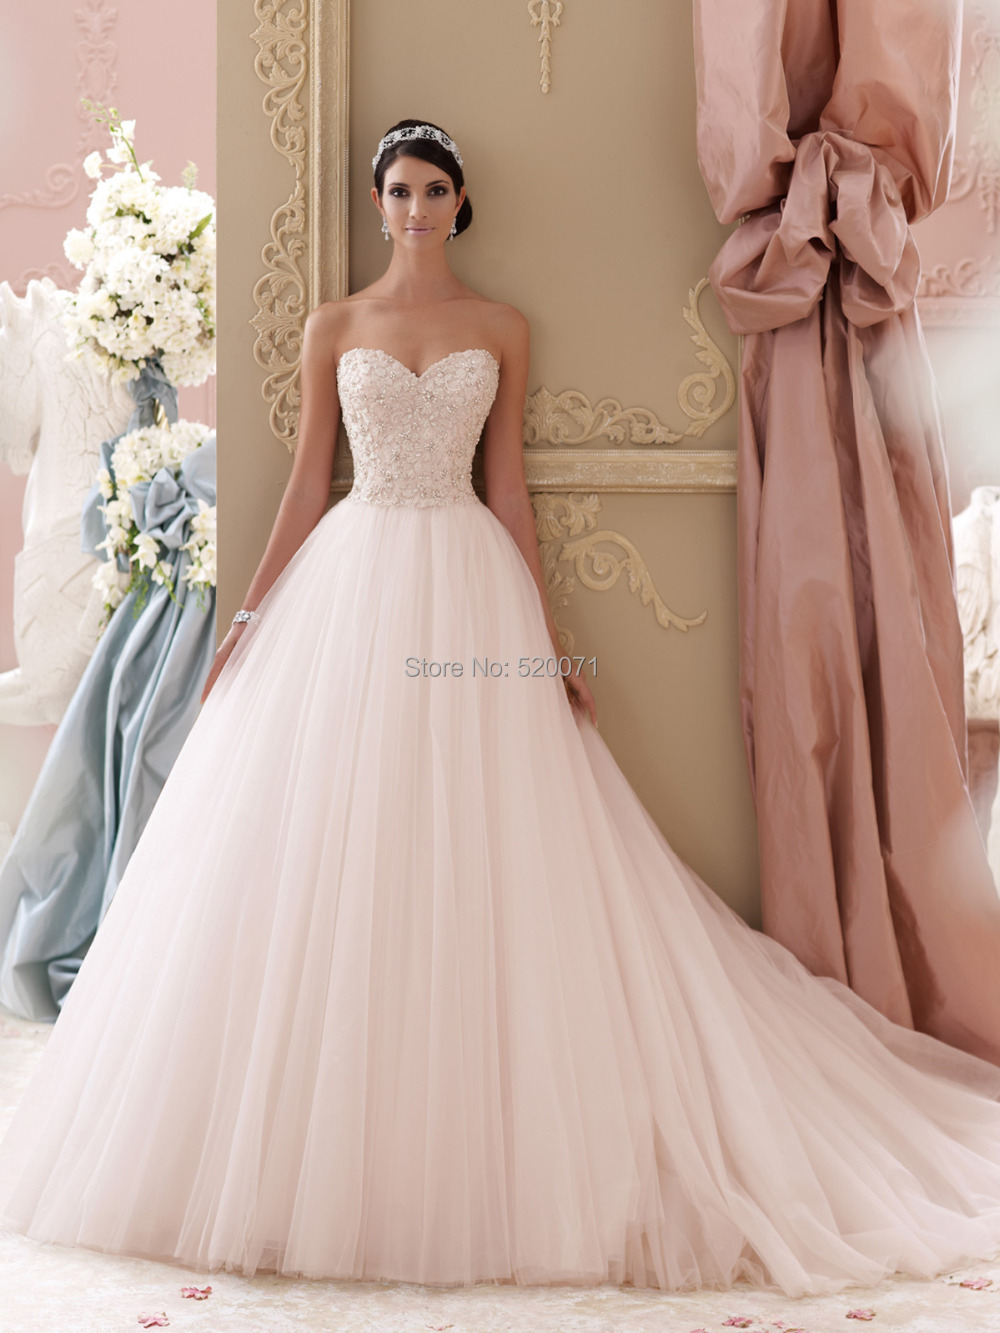 Aliexpress Buy 2015 Fashion Ball Gown V Neck Strapless White Ivory Lace Wedding Dresses